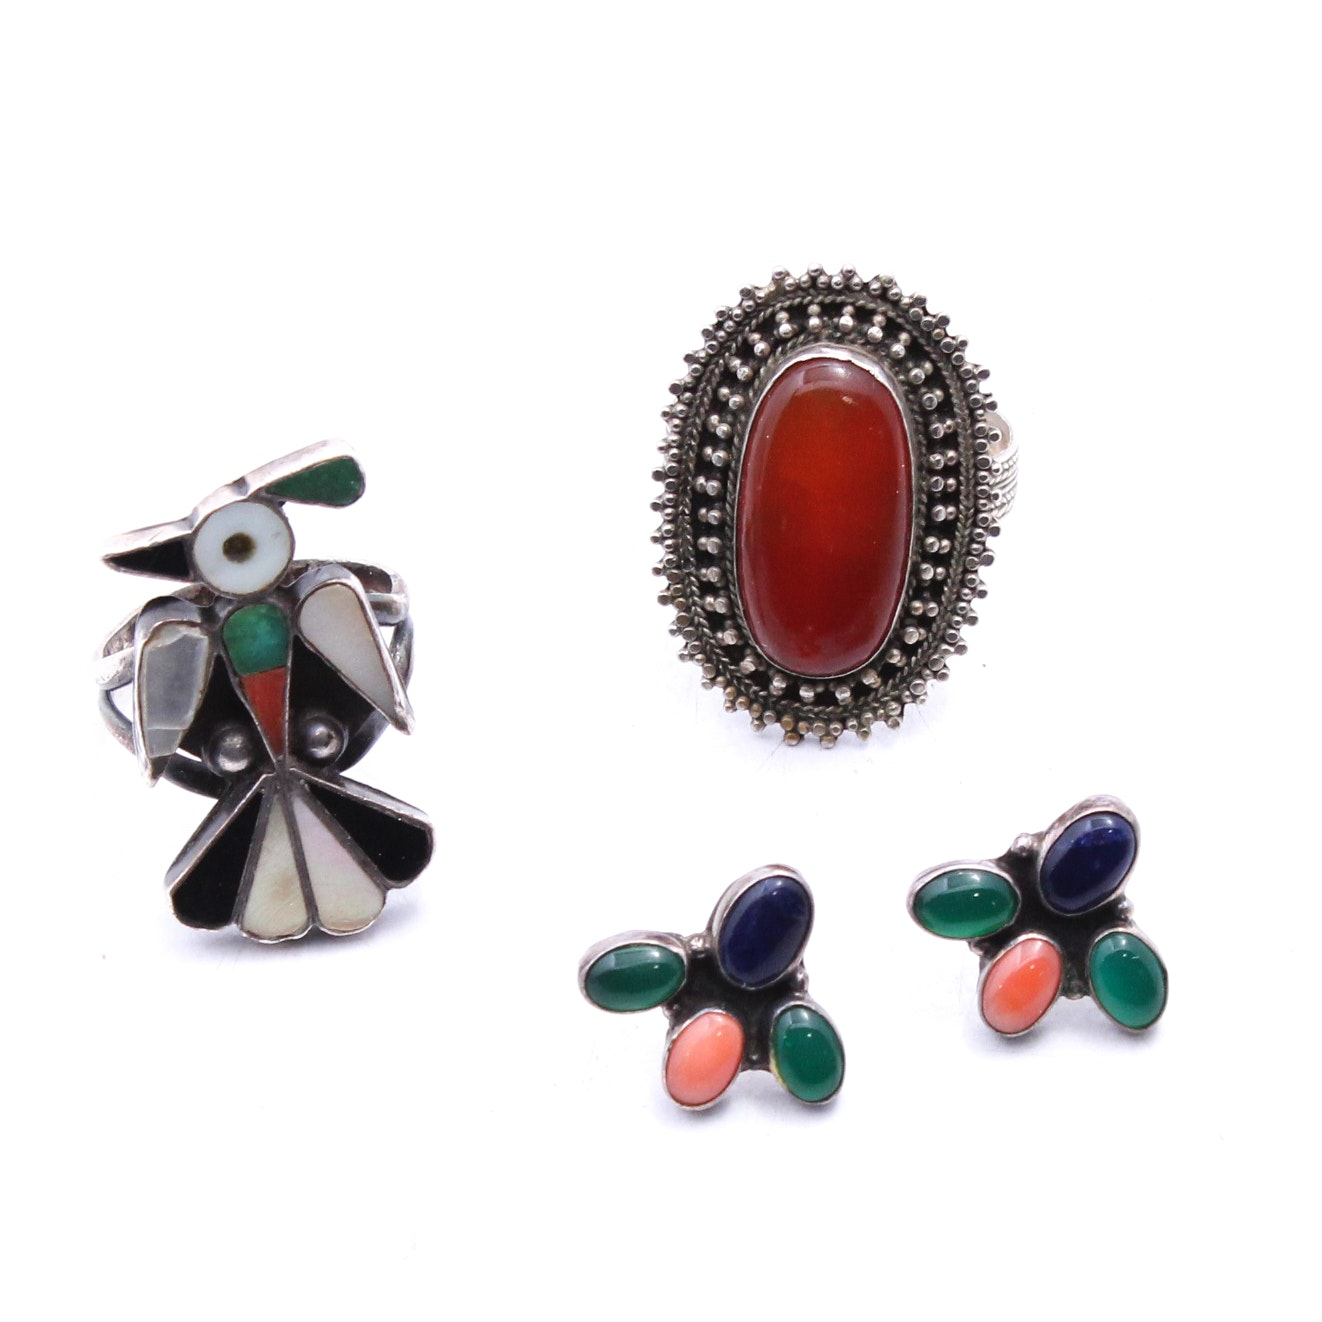 Southwestern Sterling Silver and Gemstone Rings and Earrings